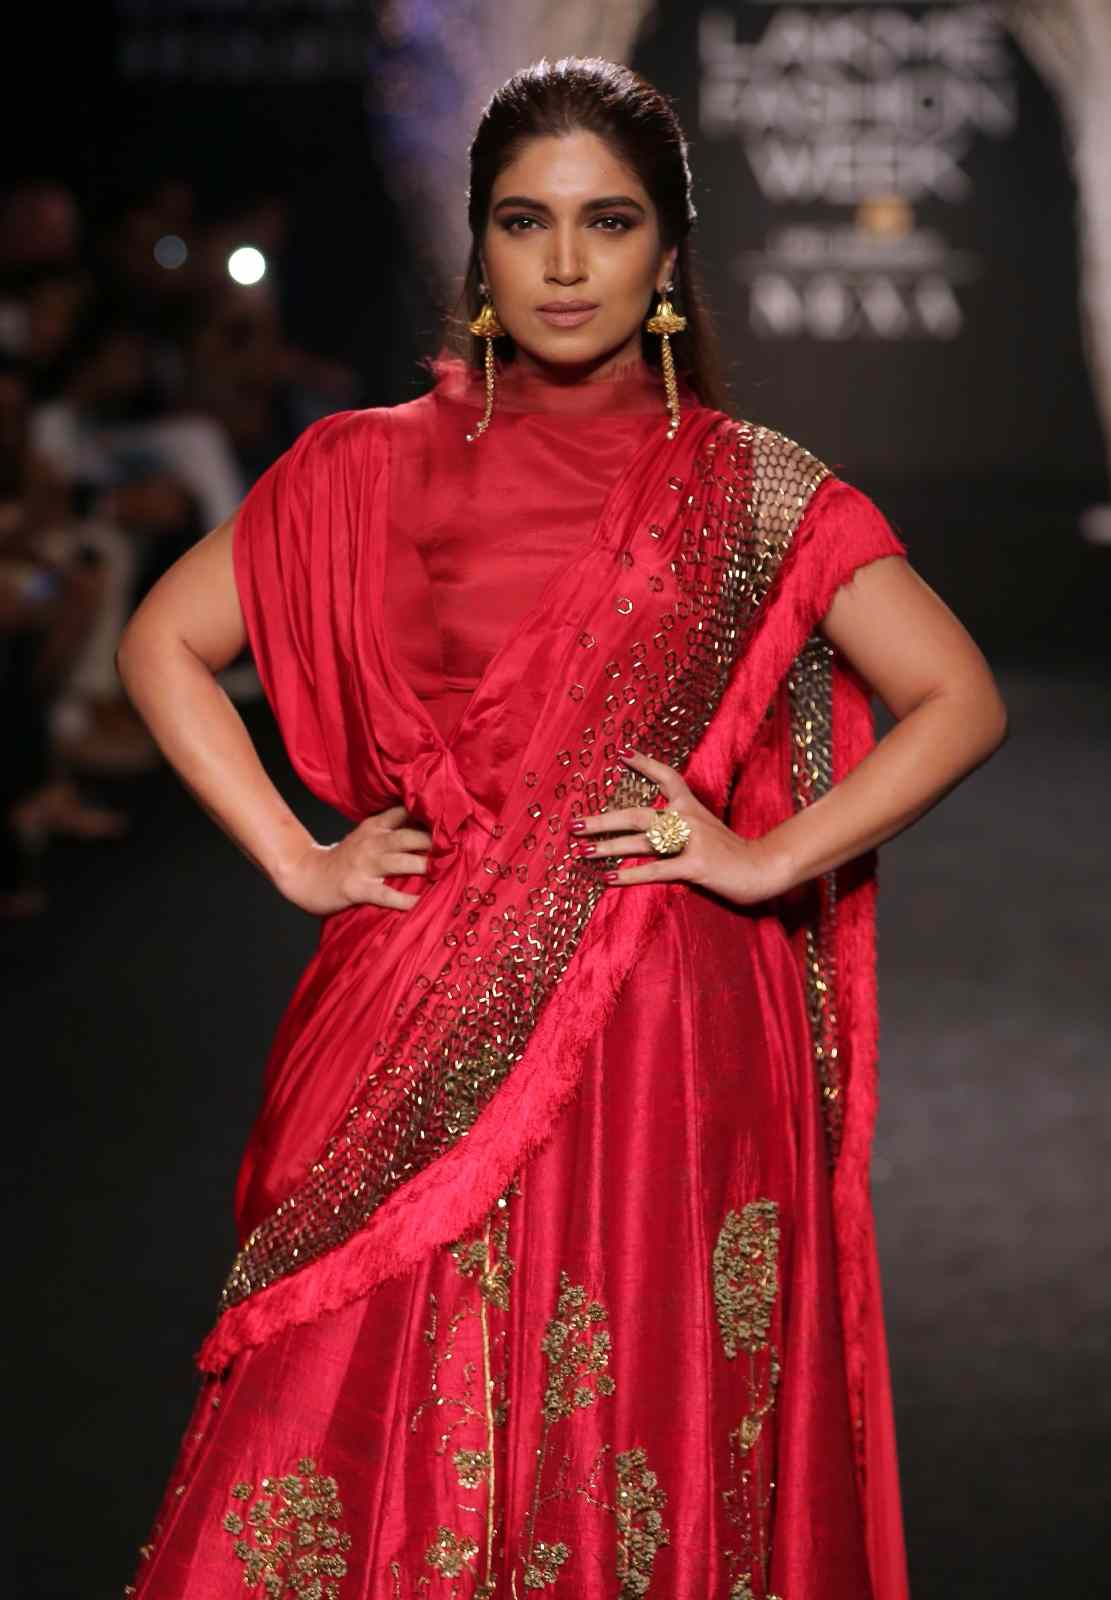 actress bhumi pednekar  has said that this great thing about fashion